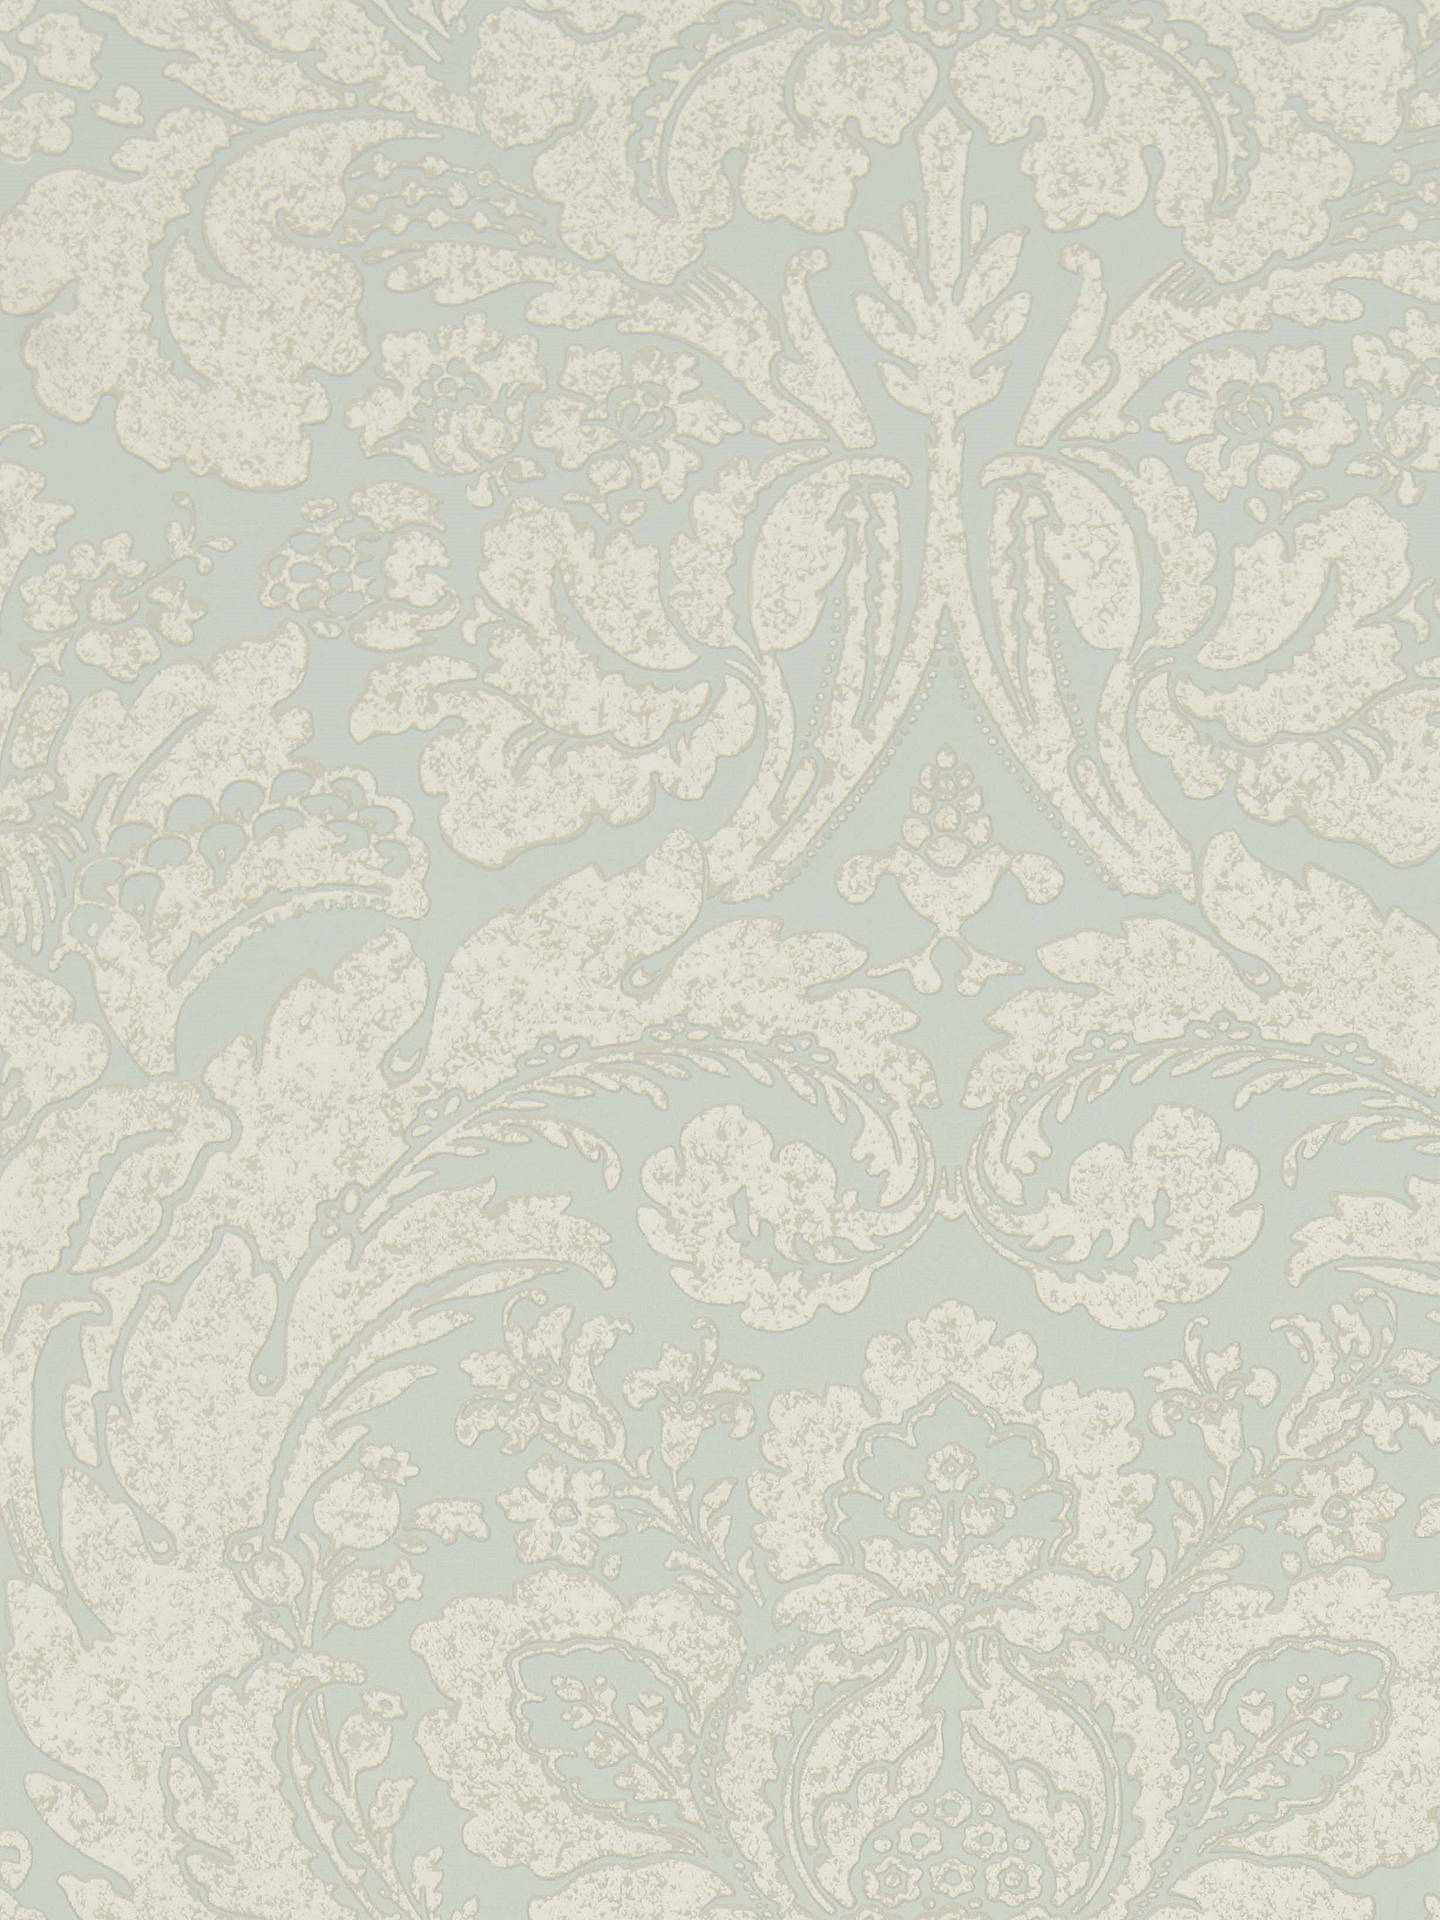 Buy Sanderson Courtney Wallpaper DDAM216405 Online at johnlewis.com